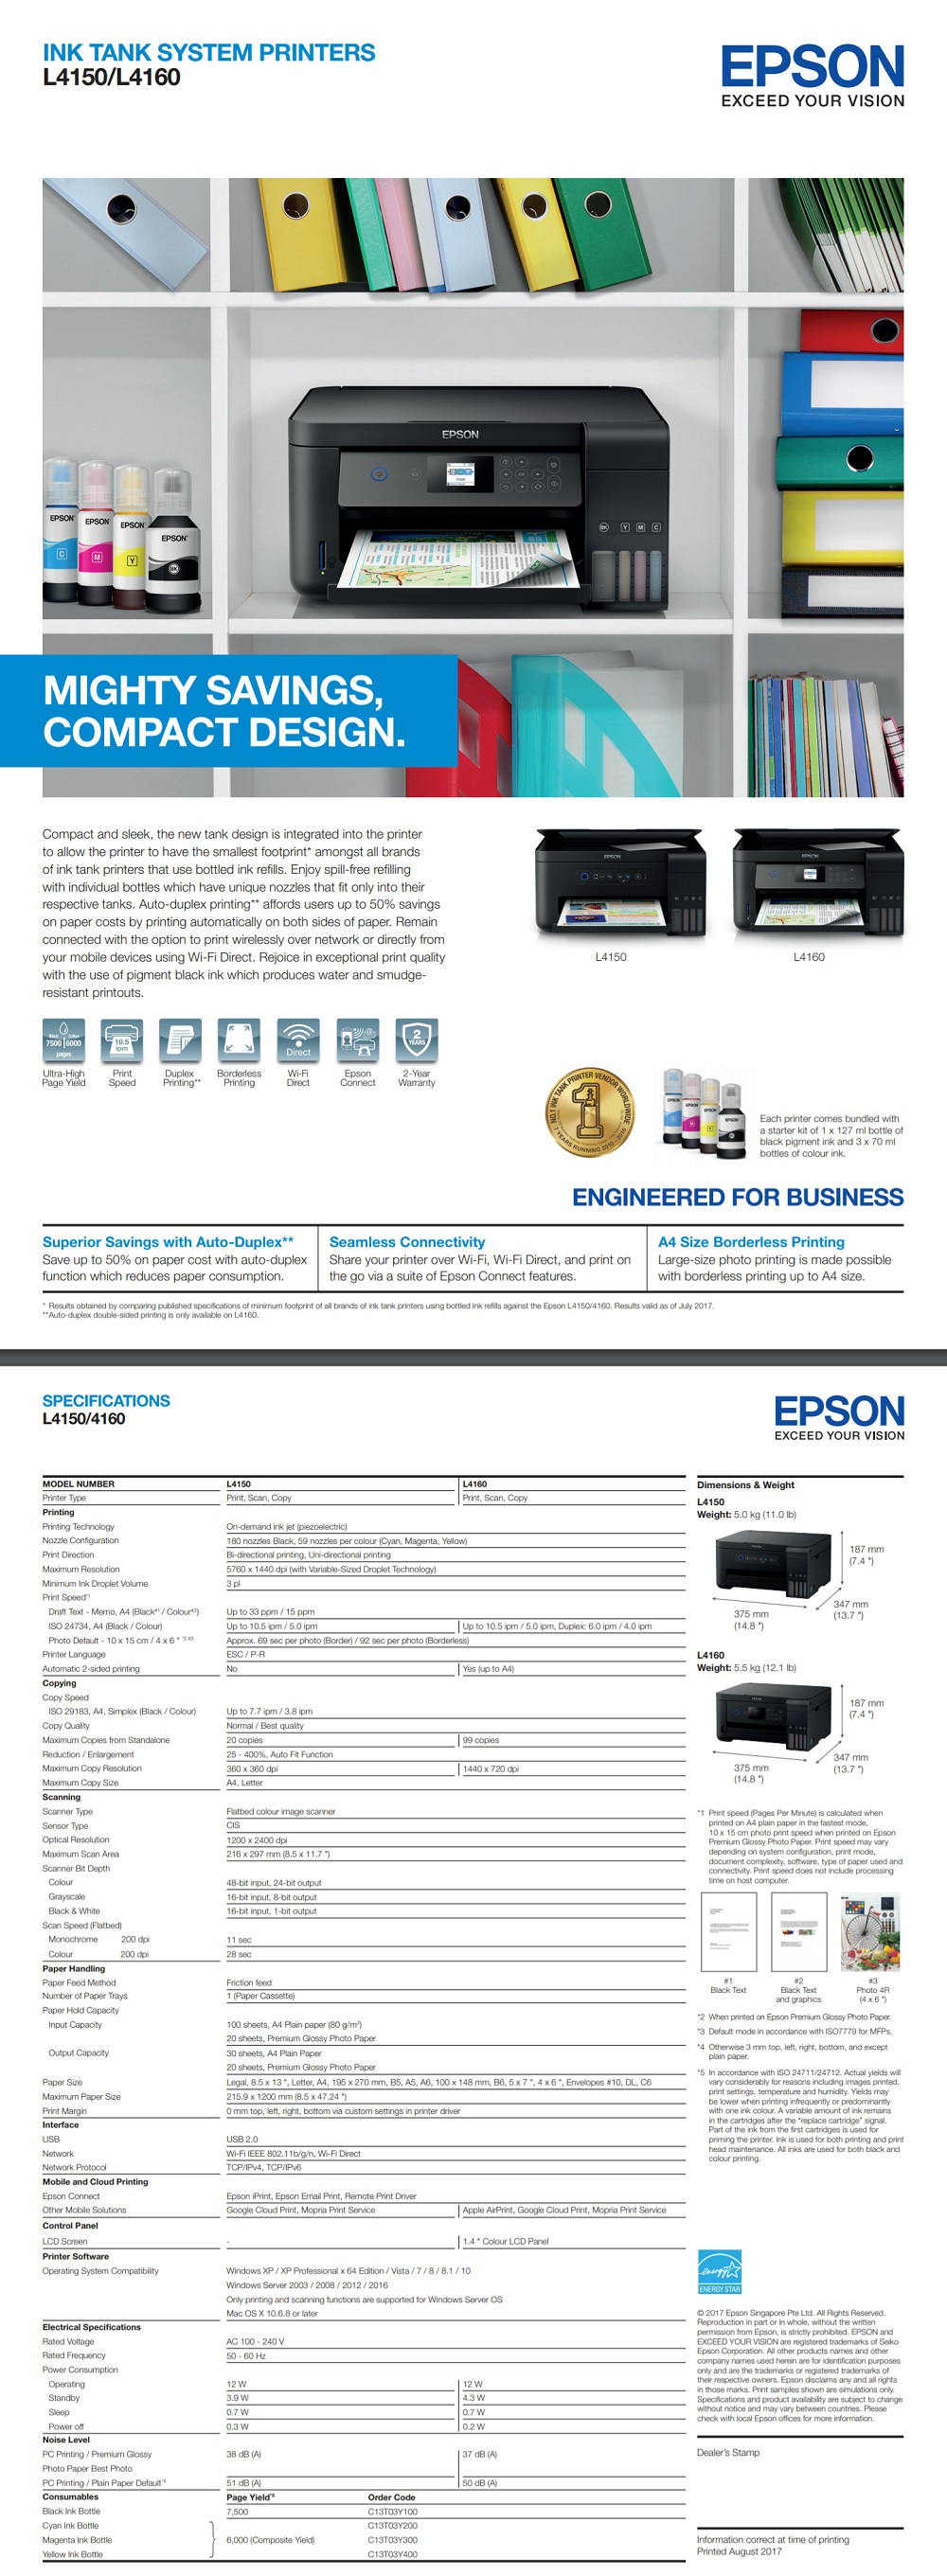 Epson EcoTank L4160 Ink Tank Printer A4 Multi-Function Colour Inkjet for  Students/Home/Everyday Printing